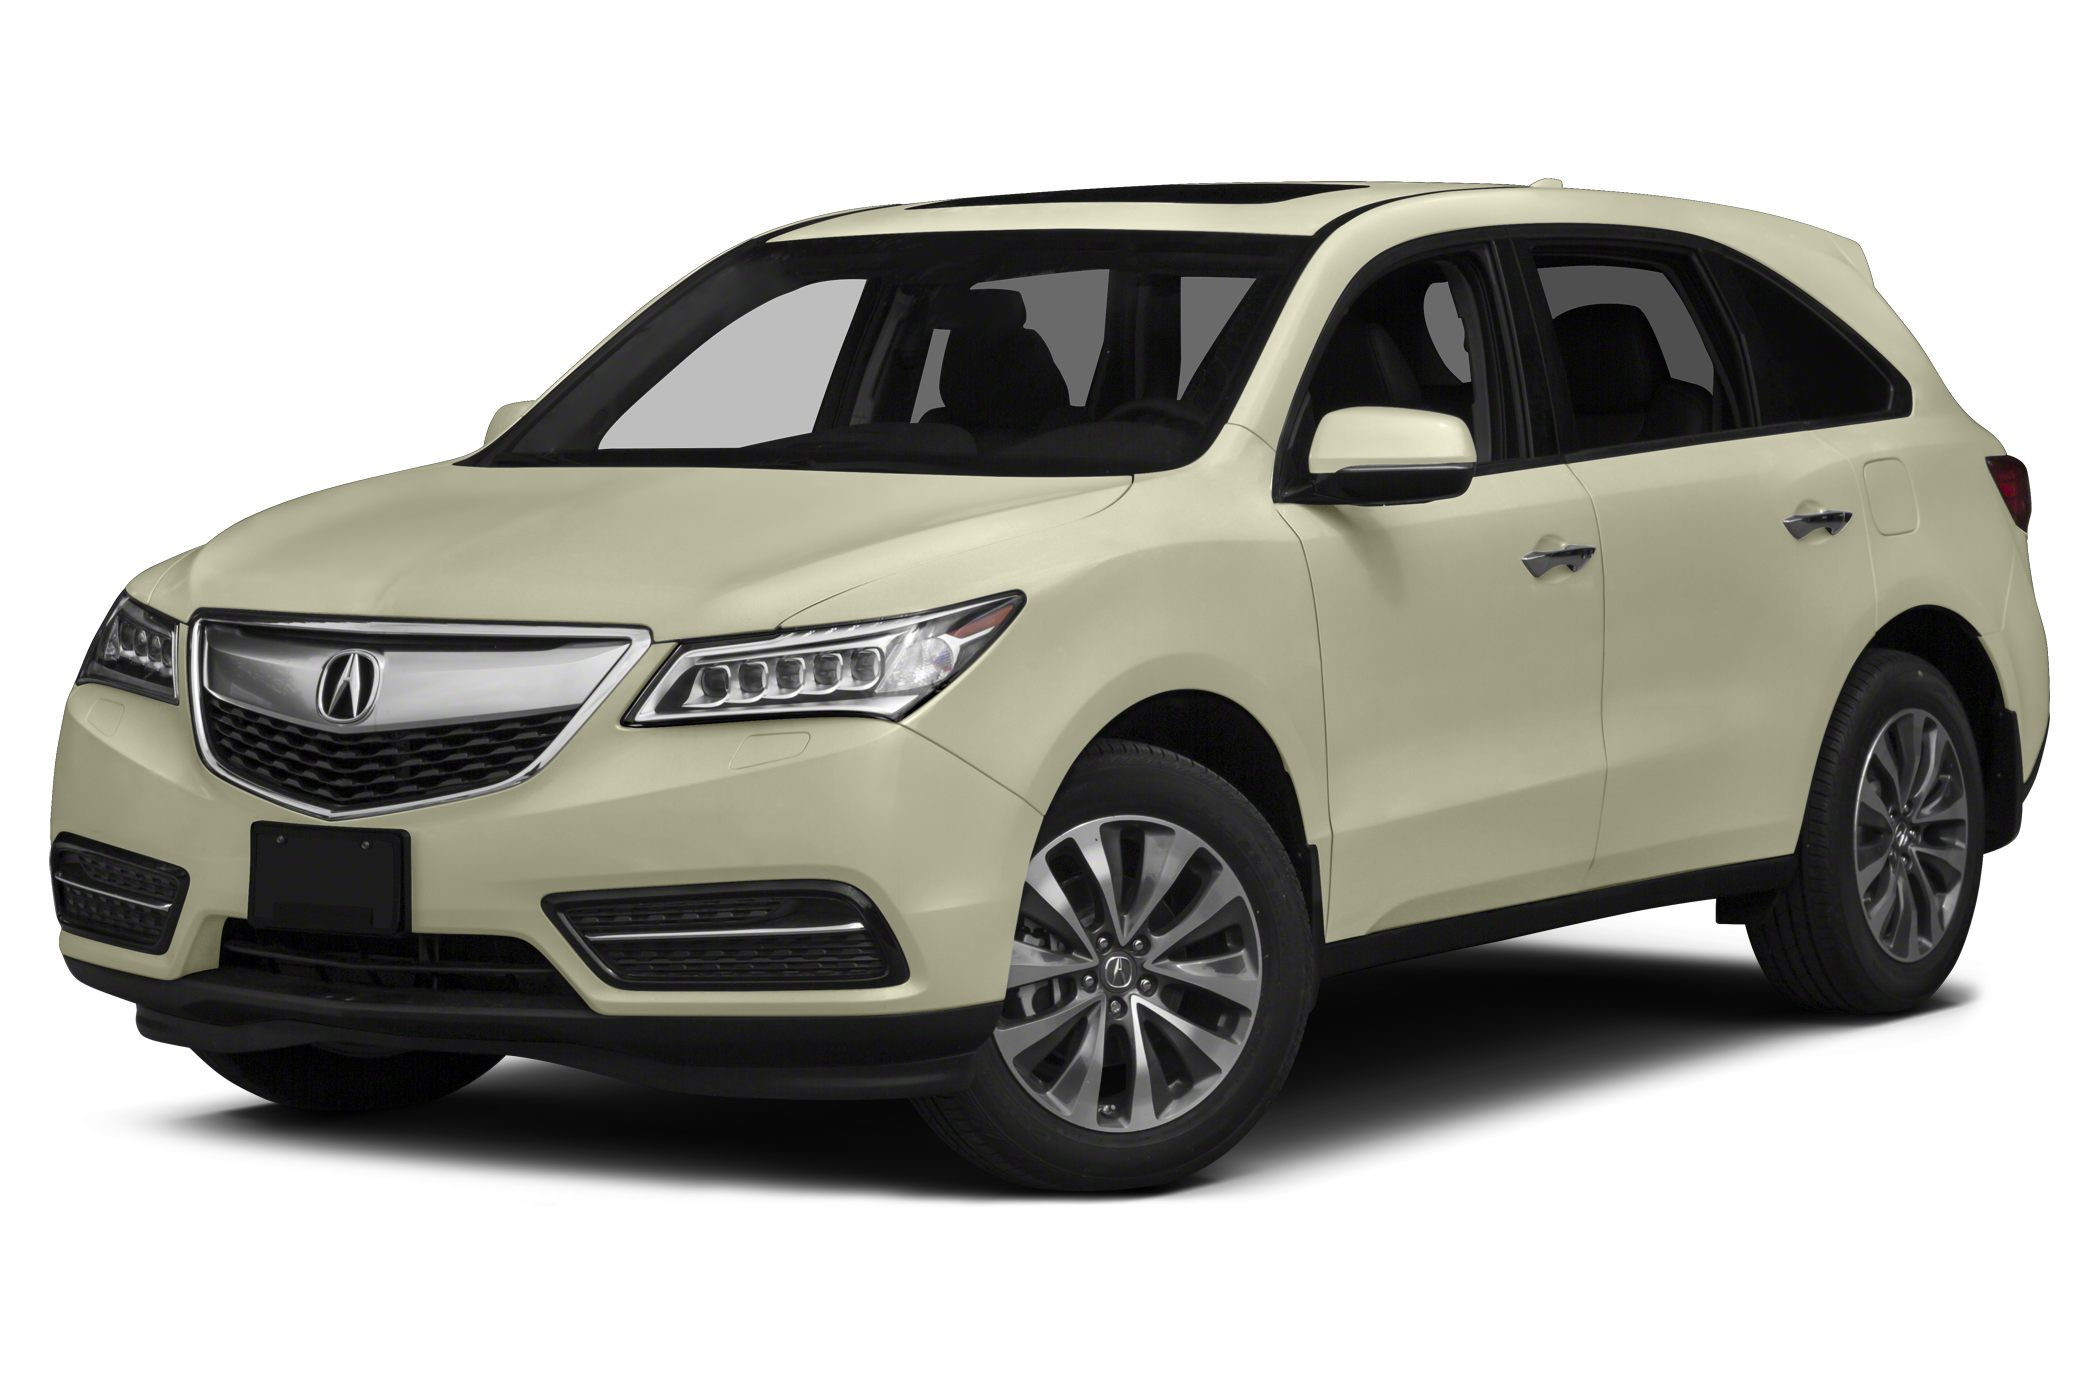 2015 Acura MDX 3.5L Technology Package SUV for sale in Columbus for $49,960 with 3 miles.